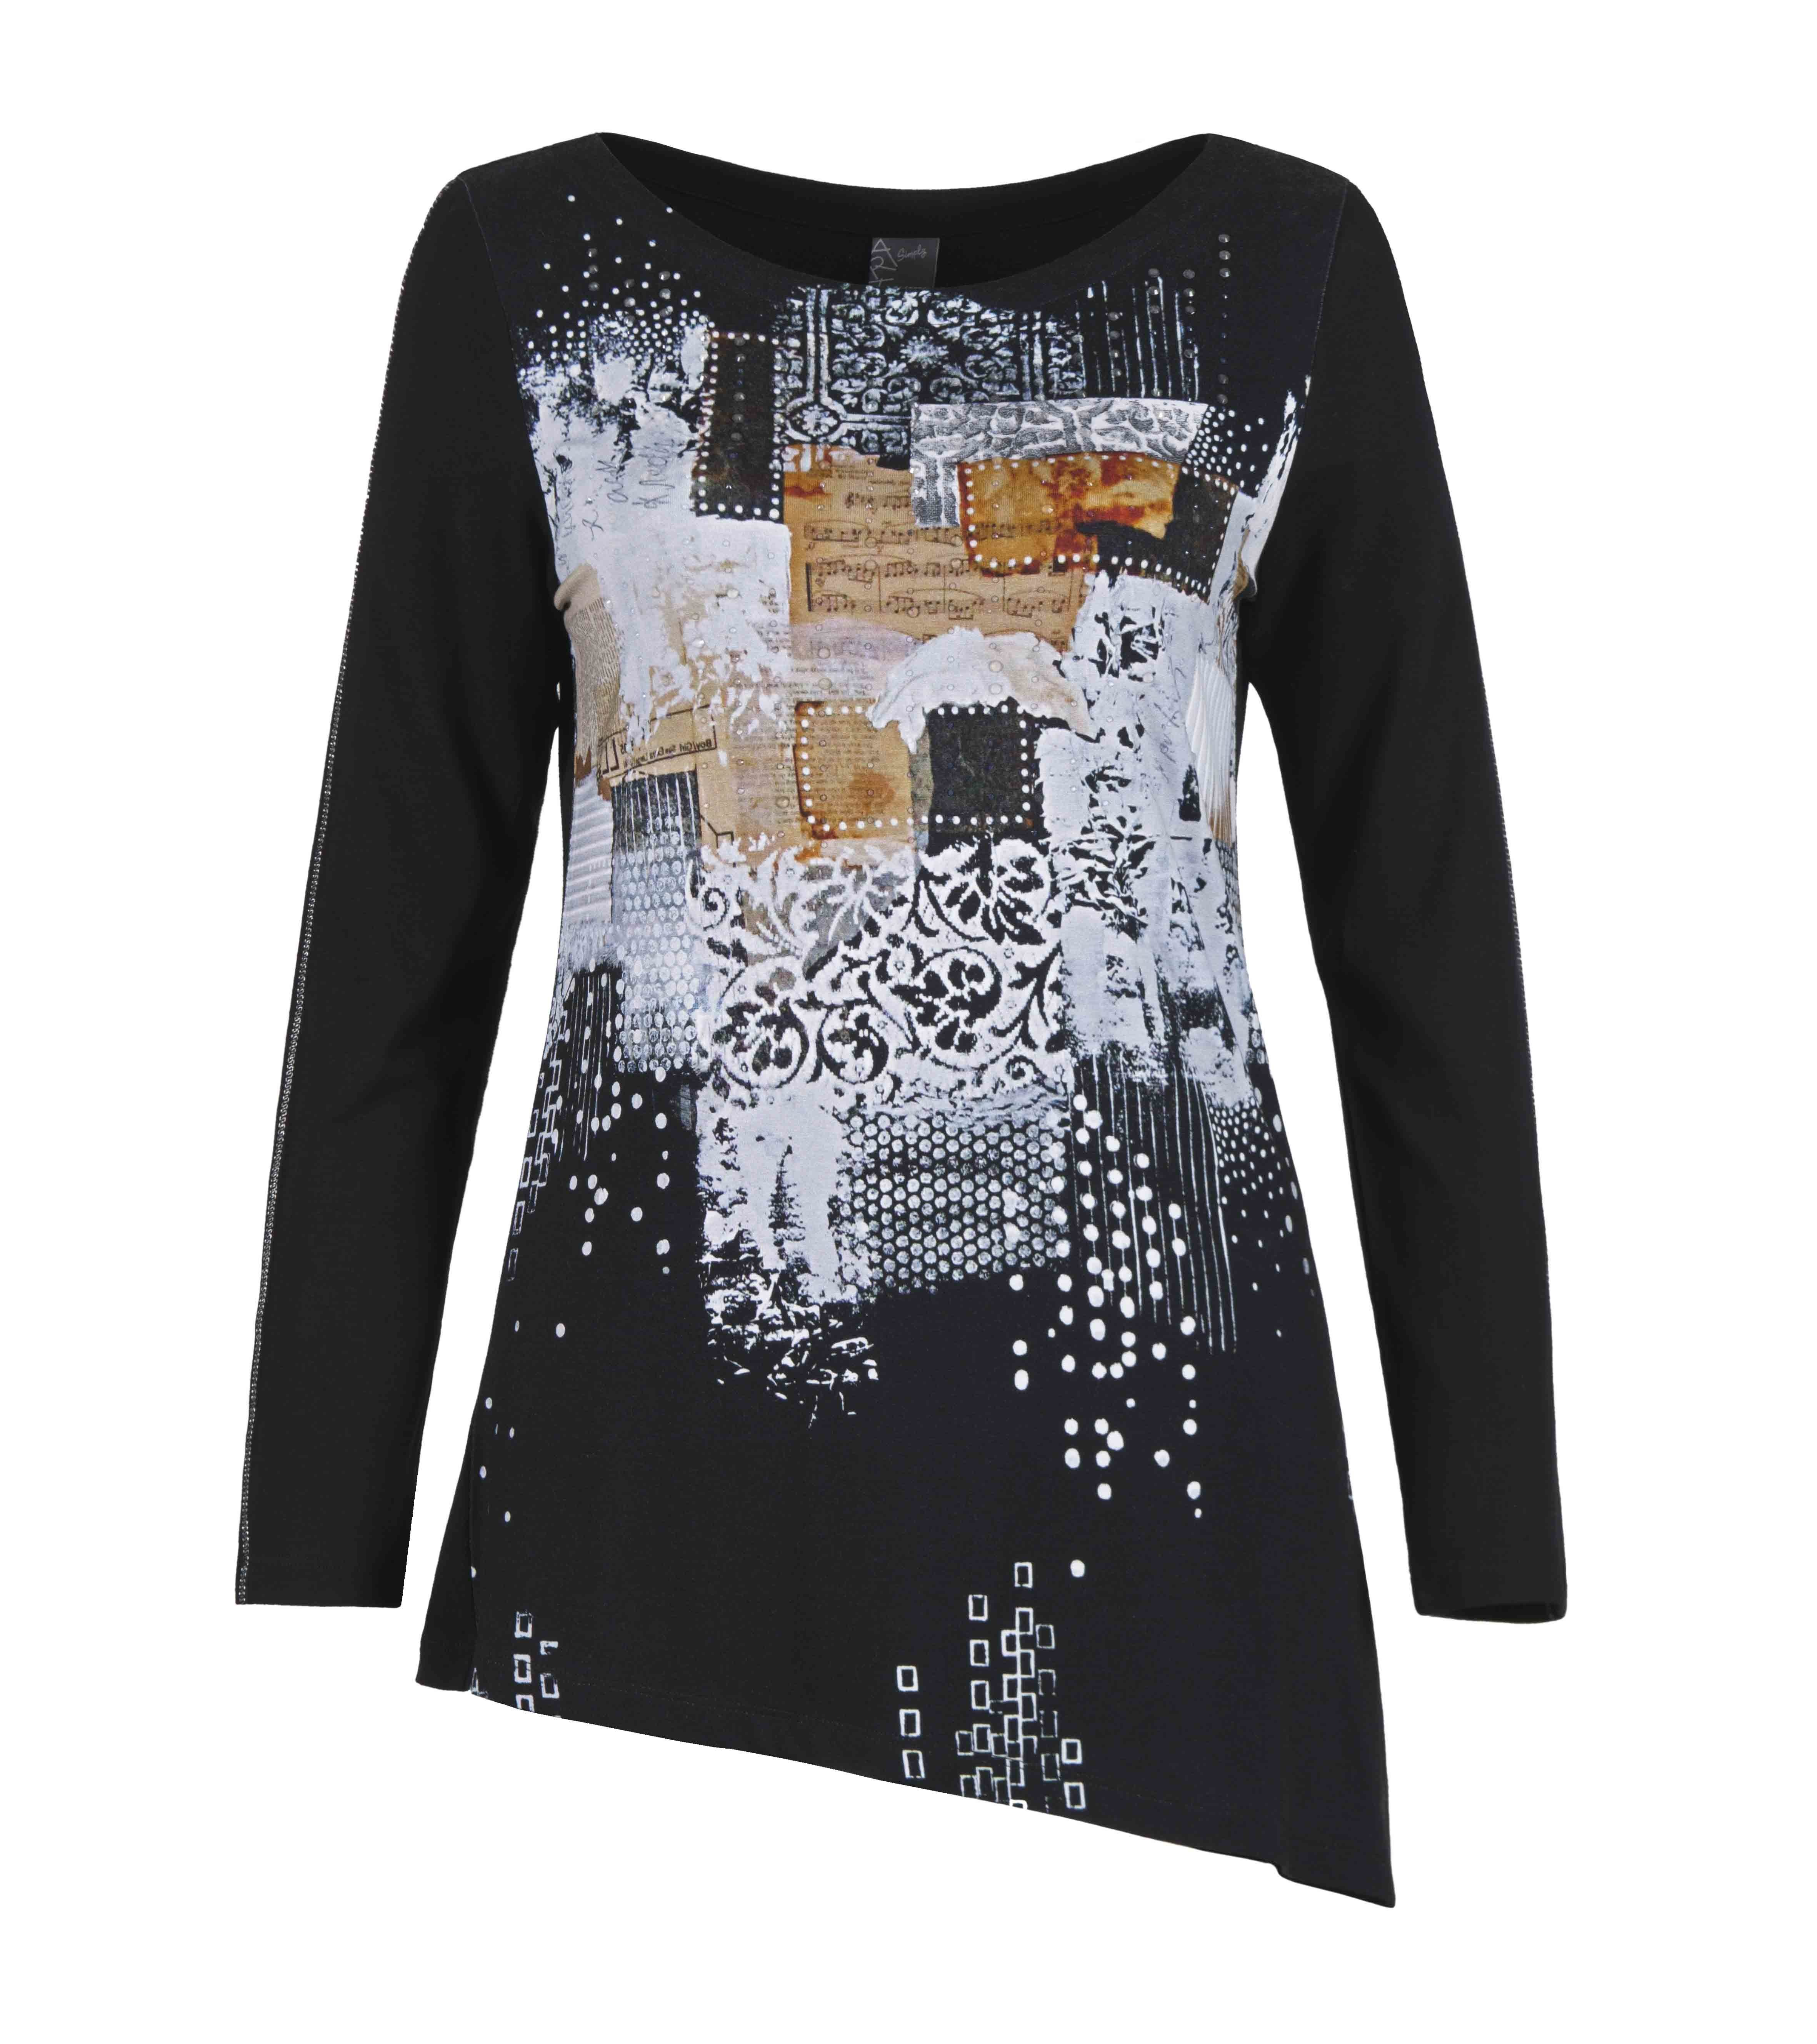 Simply Art Dolcezza: Explosion of Crystals Asymmetrical Abstract Art Tunic (1 Left!)